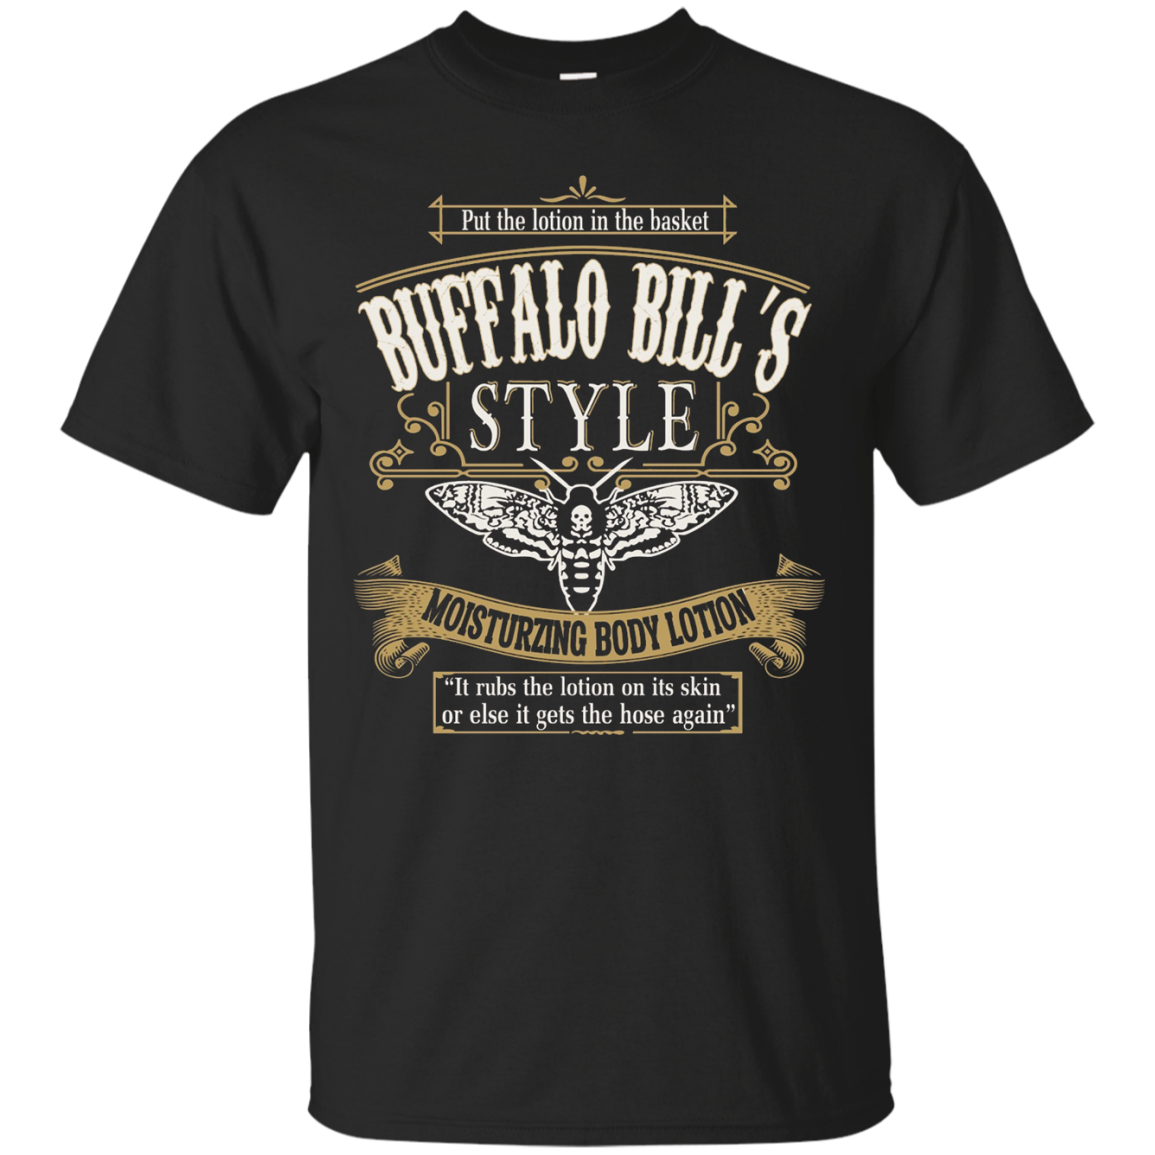 Buffalo Bill's Style Moisturzing Body Lotion T Shirt